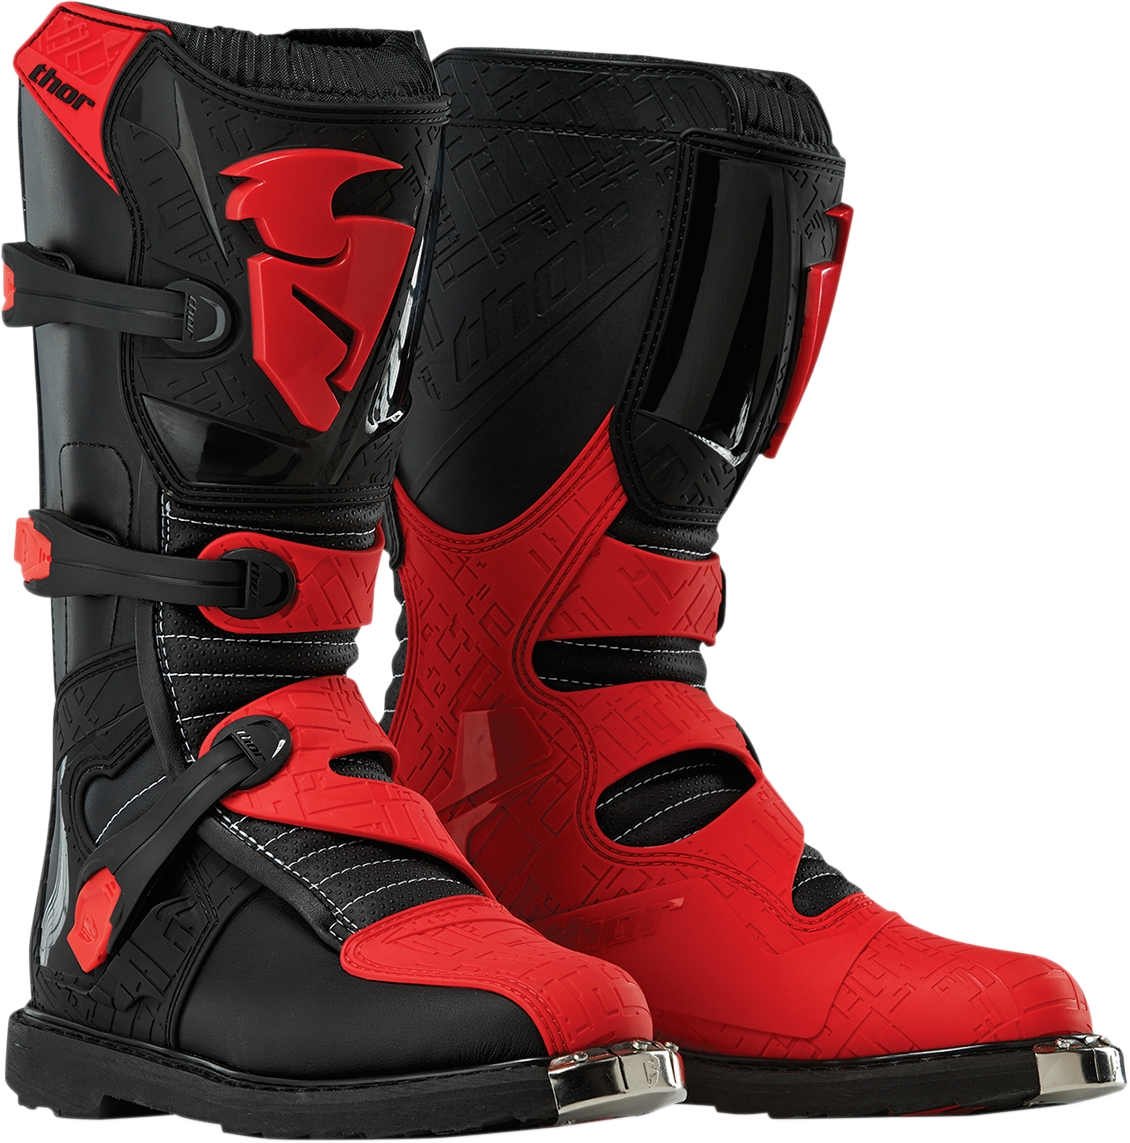 New Thor S6 Youth Blitz Offroad Motorcycle ATV Riding Boots